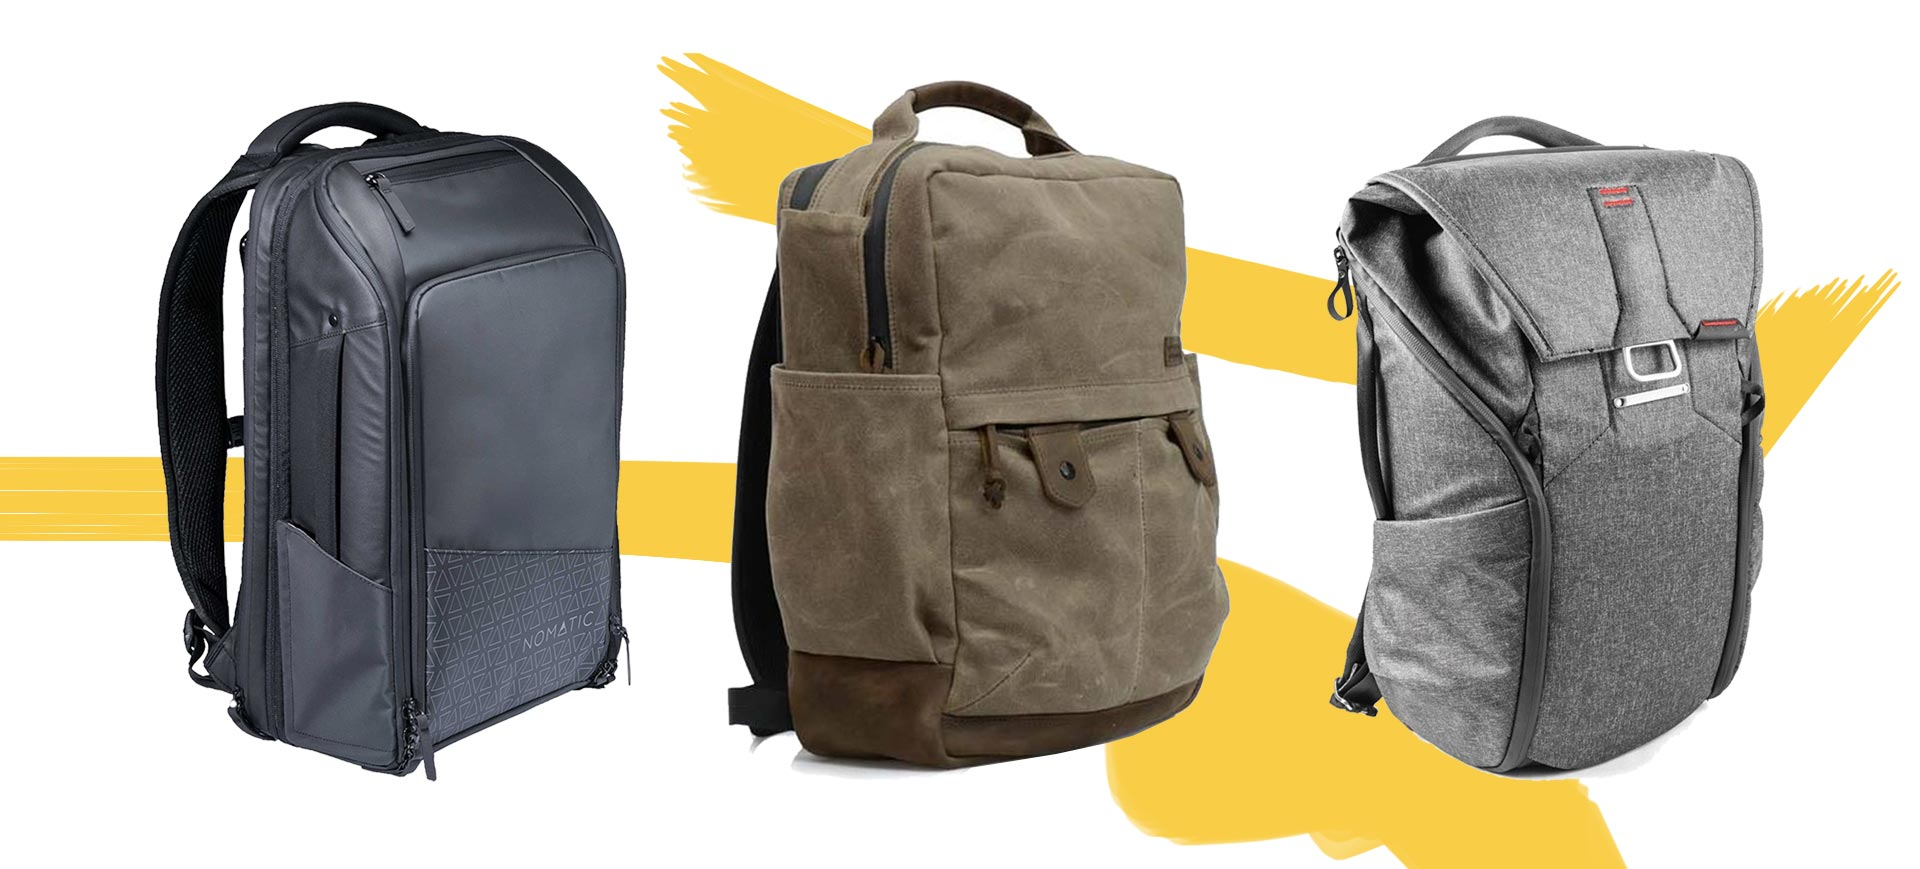 23+ Modern, Stylish Daily Carry Bags